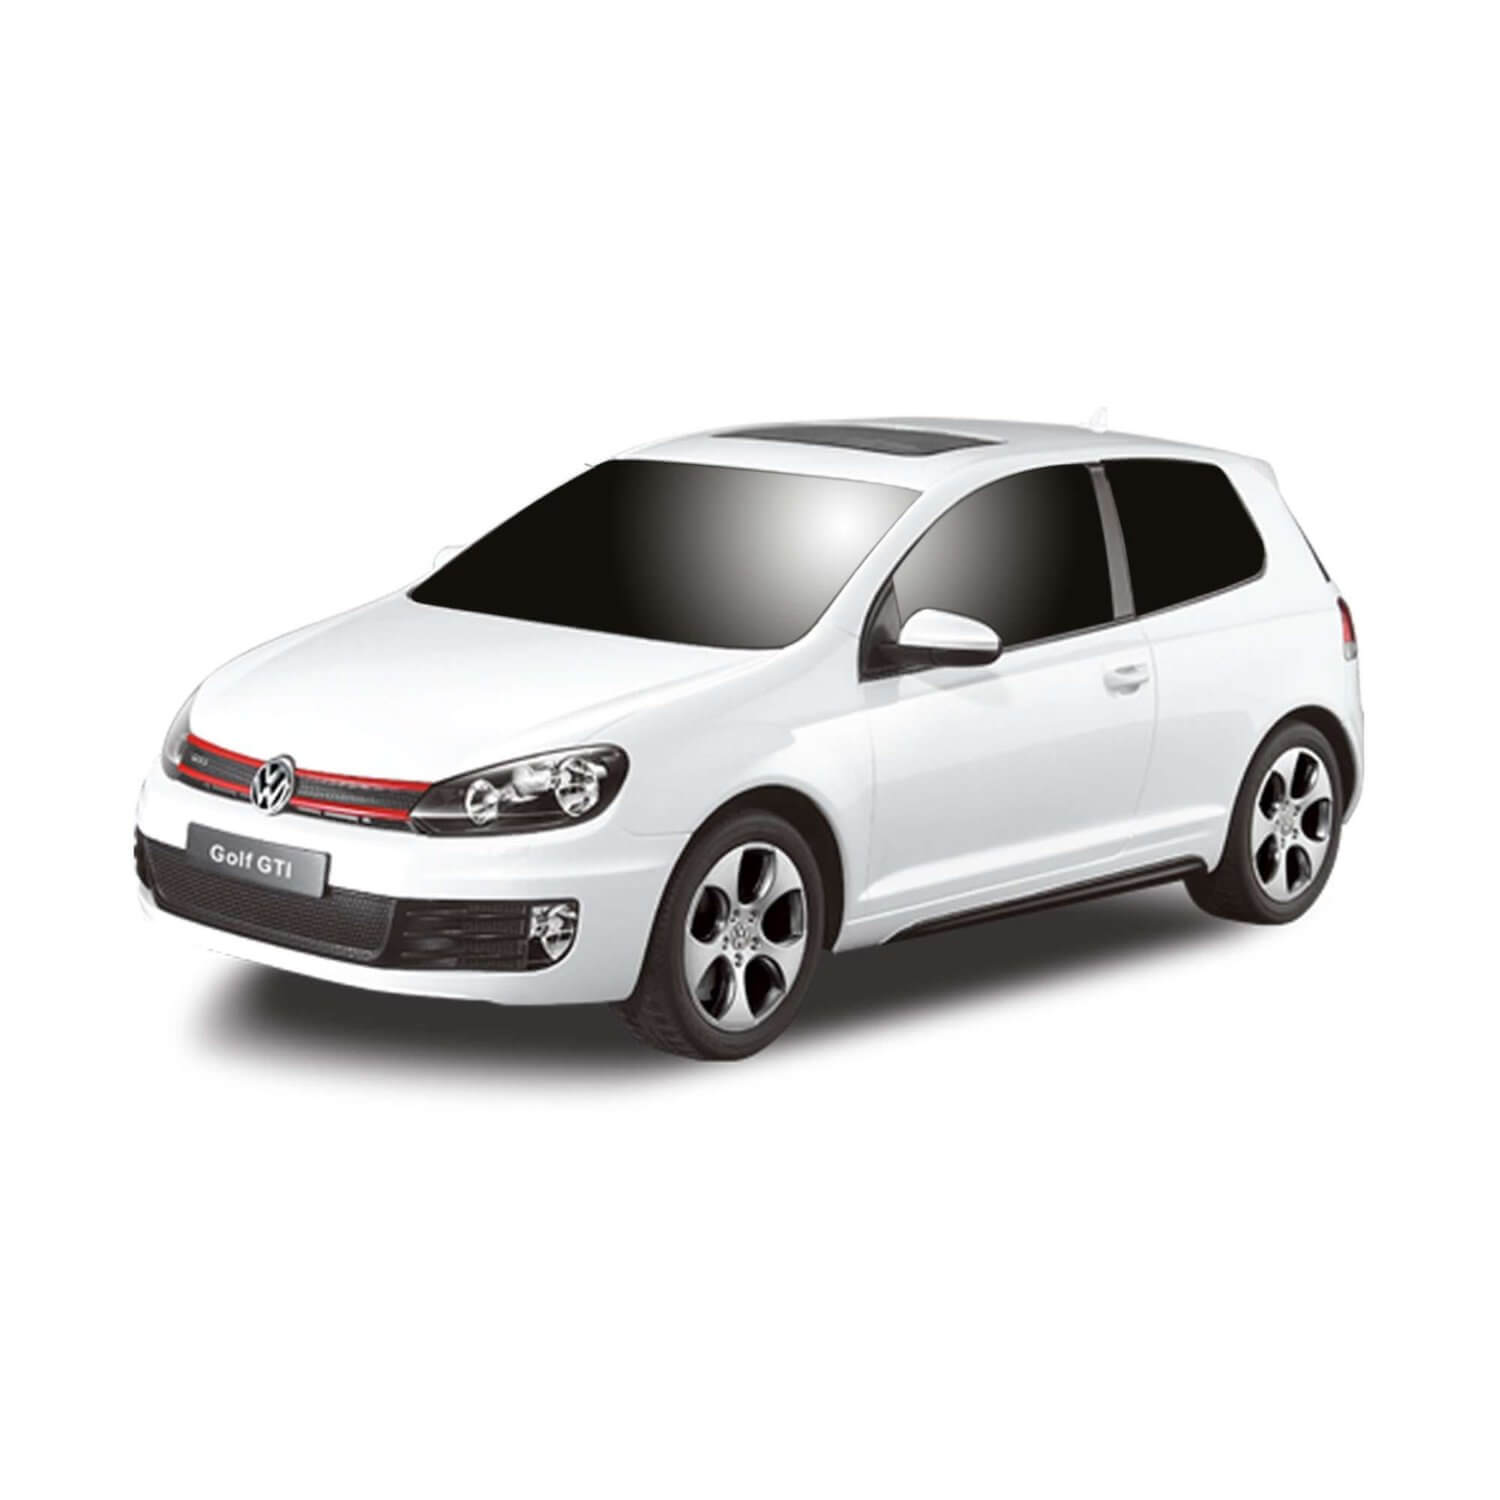 HSP Himoto – VW Golf GTI